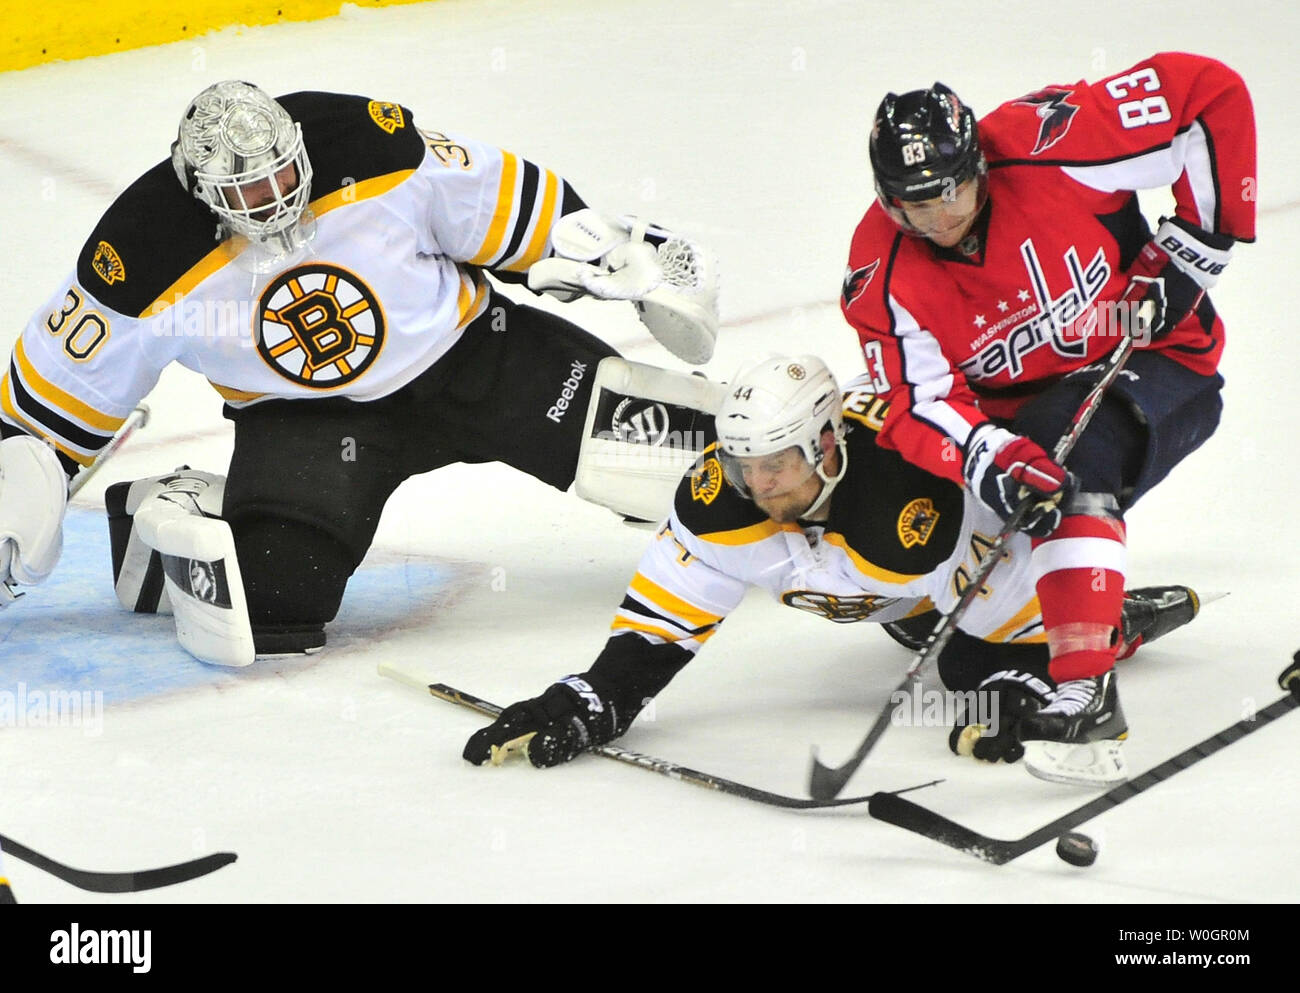 online retailer 38de9 b5dca Washington Capitals Jay Beagle is stopped by Boston Bruins ...